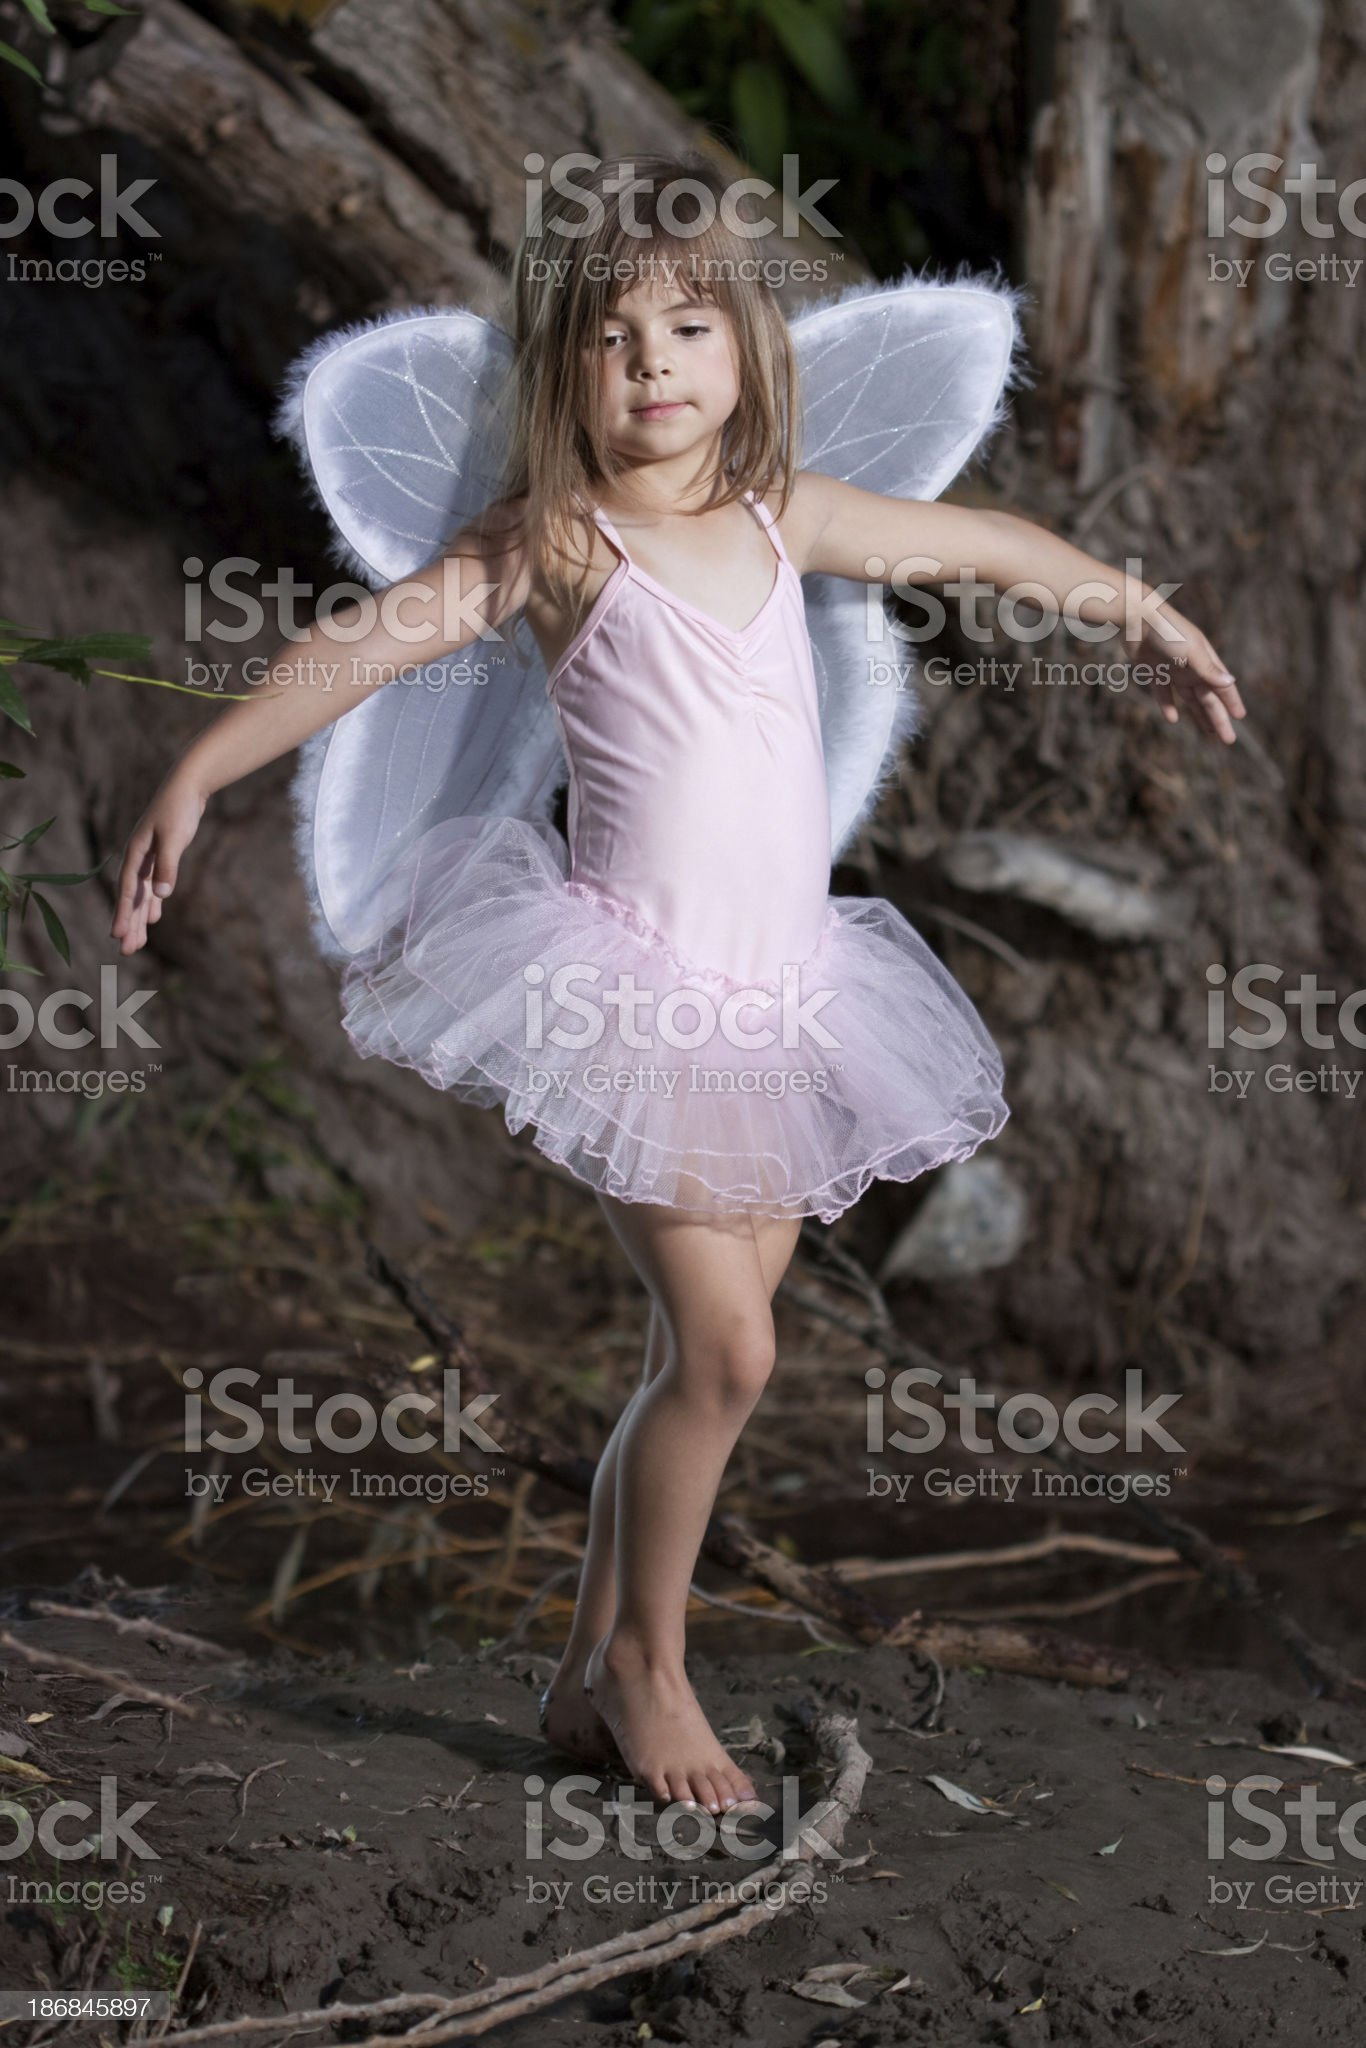 Child Wearing Wings Dancing in Forest royalty-free stock photo